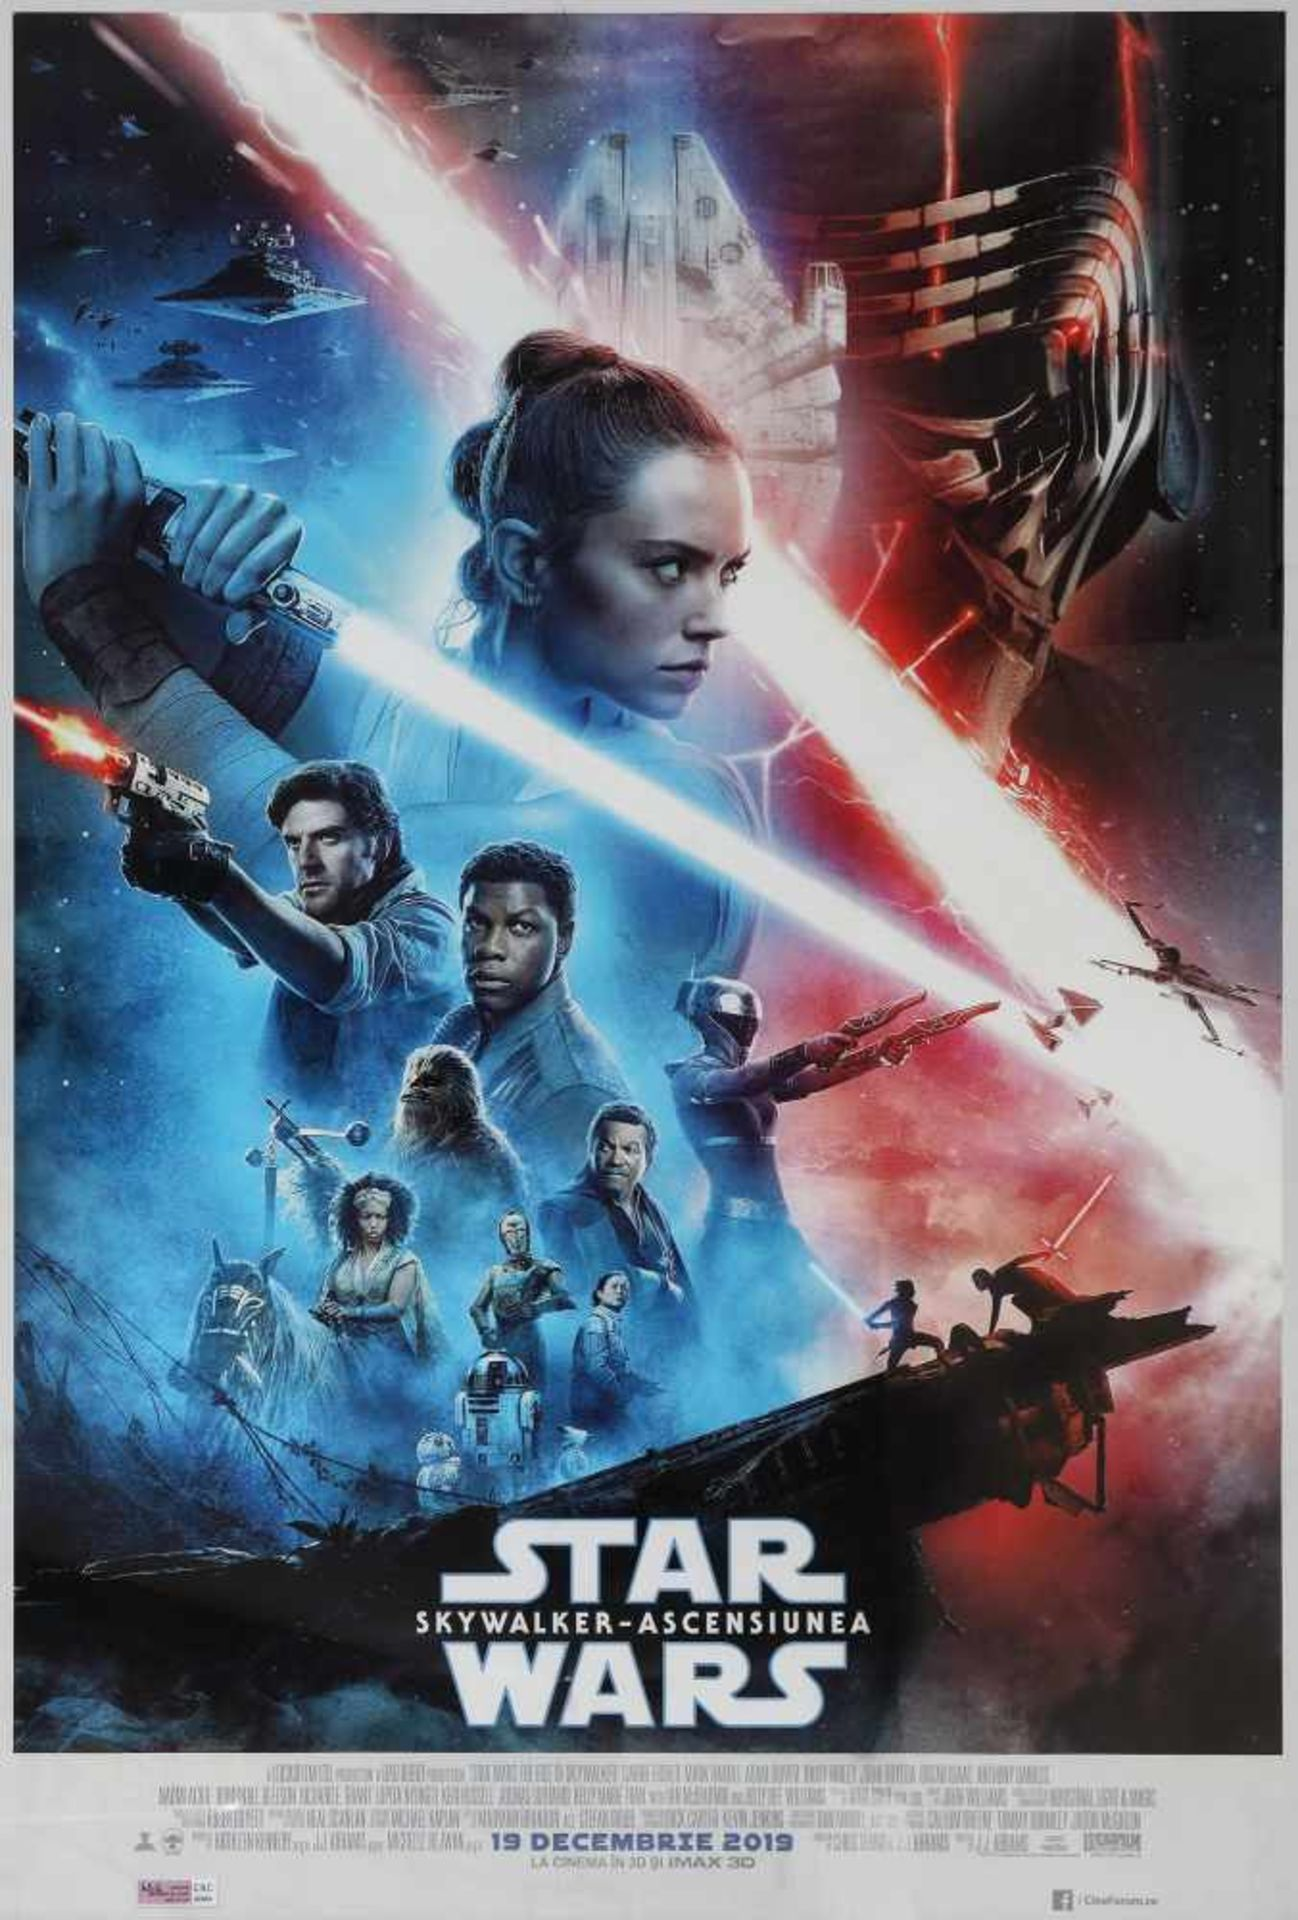 Poster for the movie Star Wars - Ascensiunea (The Rise of Skywalker)